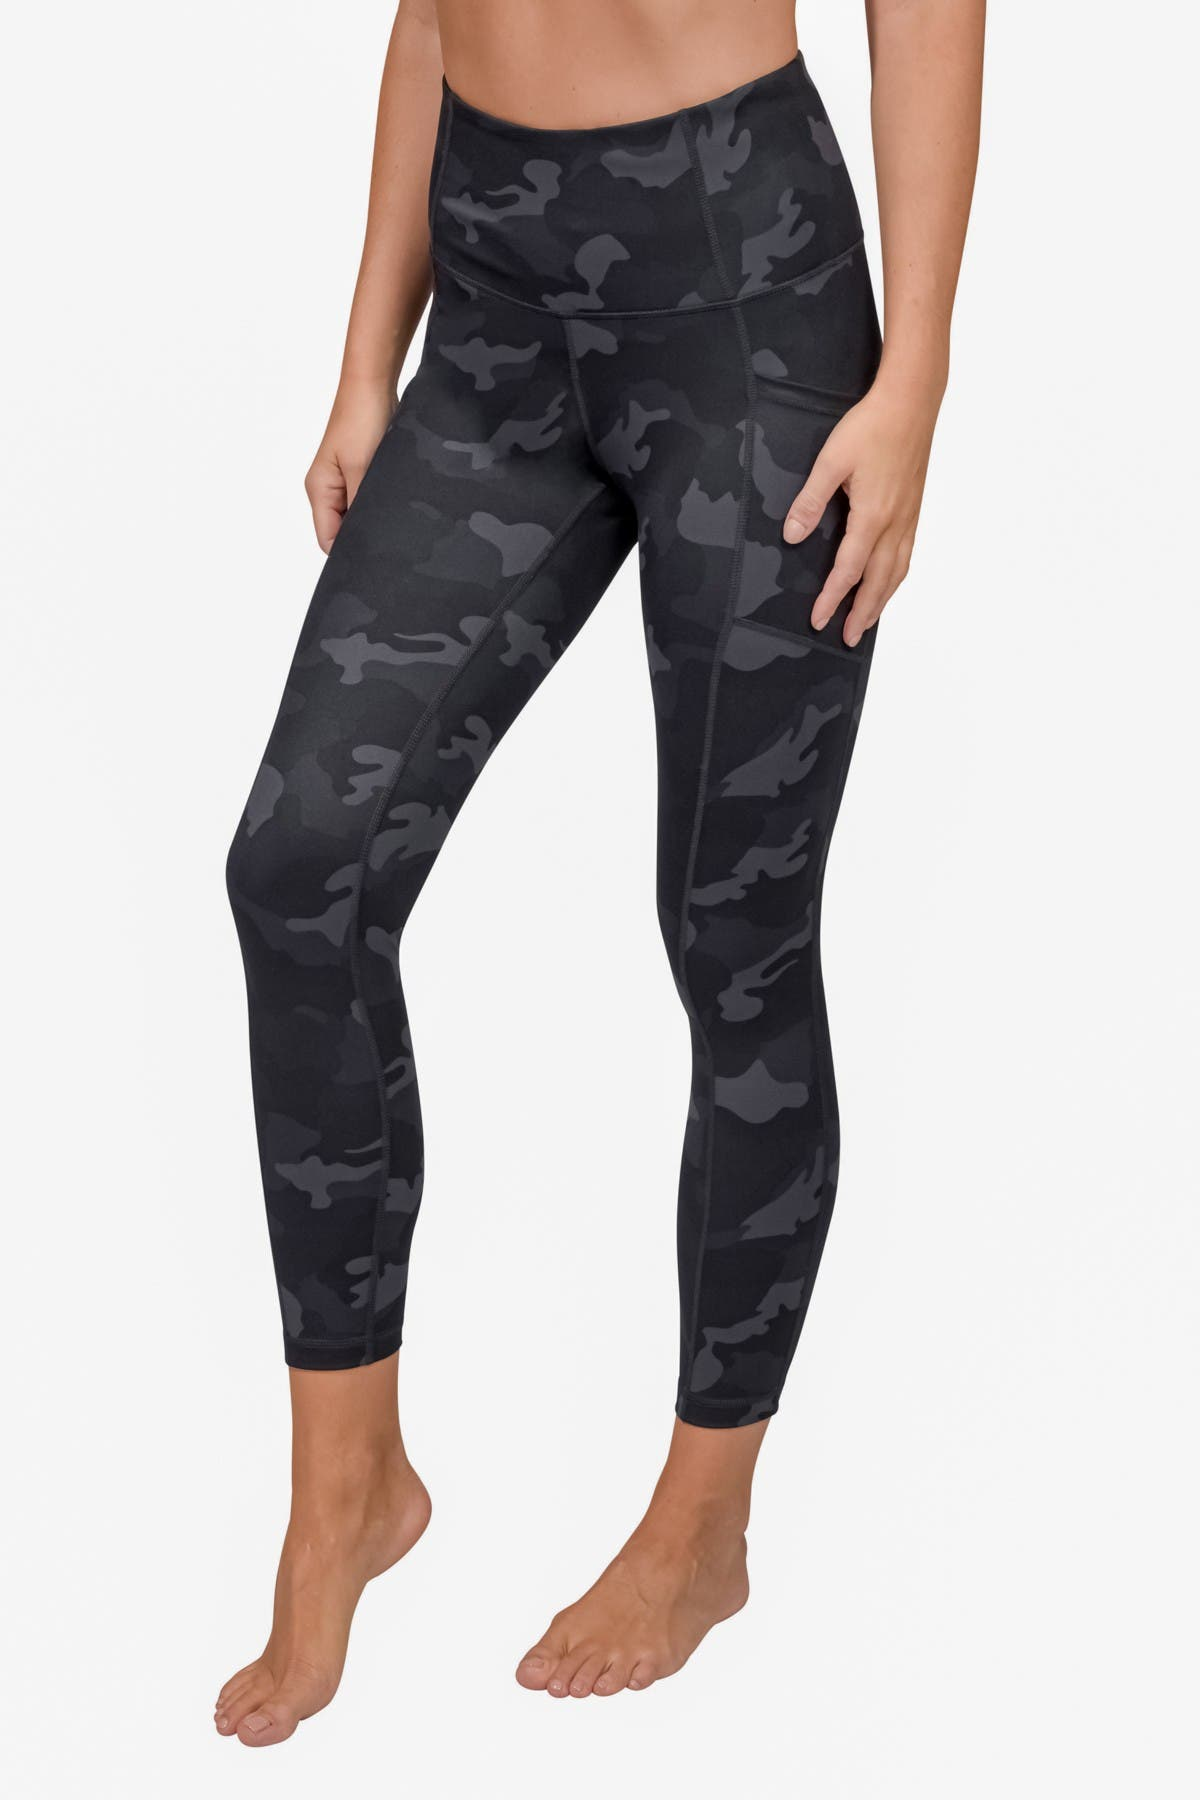 Image of 90 Degree By Reflex Yogalicious Lux Camo High Waisted Side Pocket Leggings